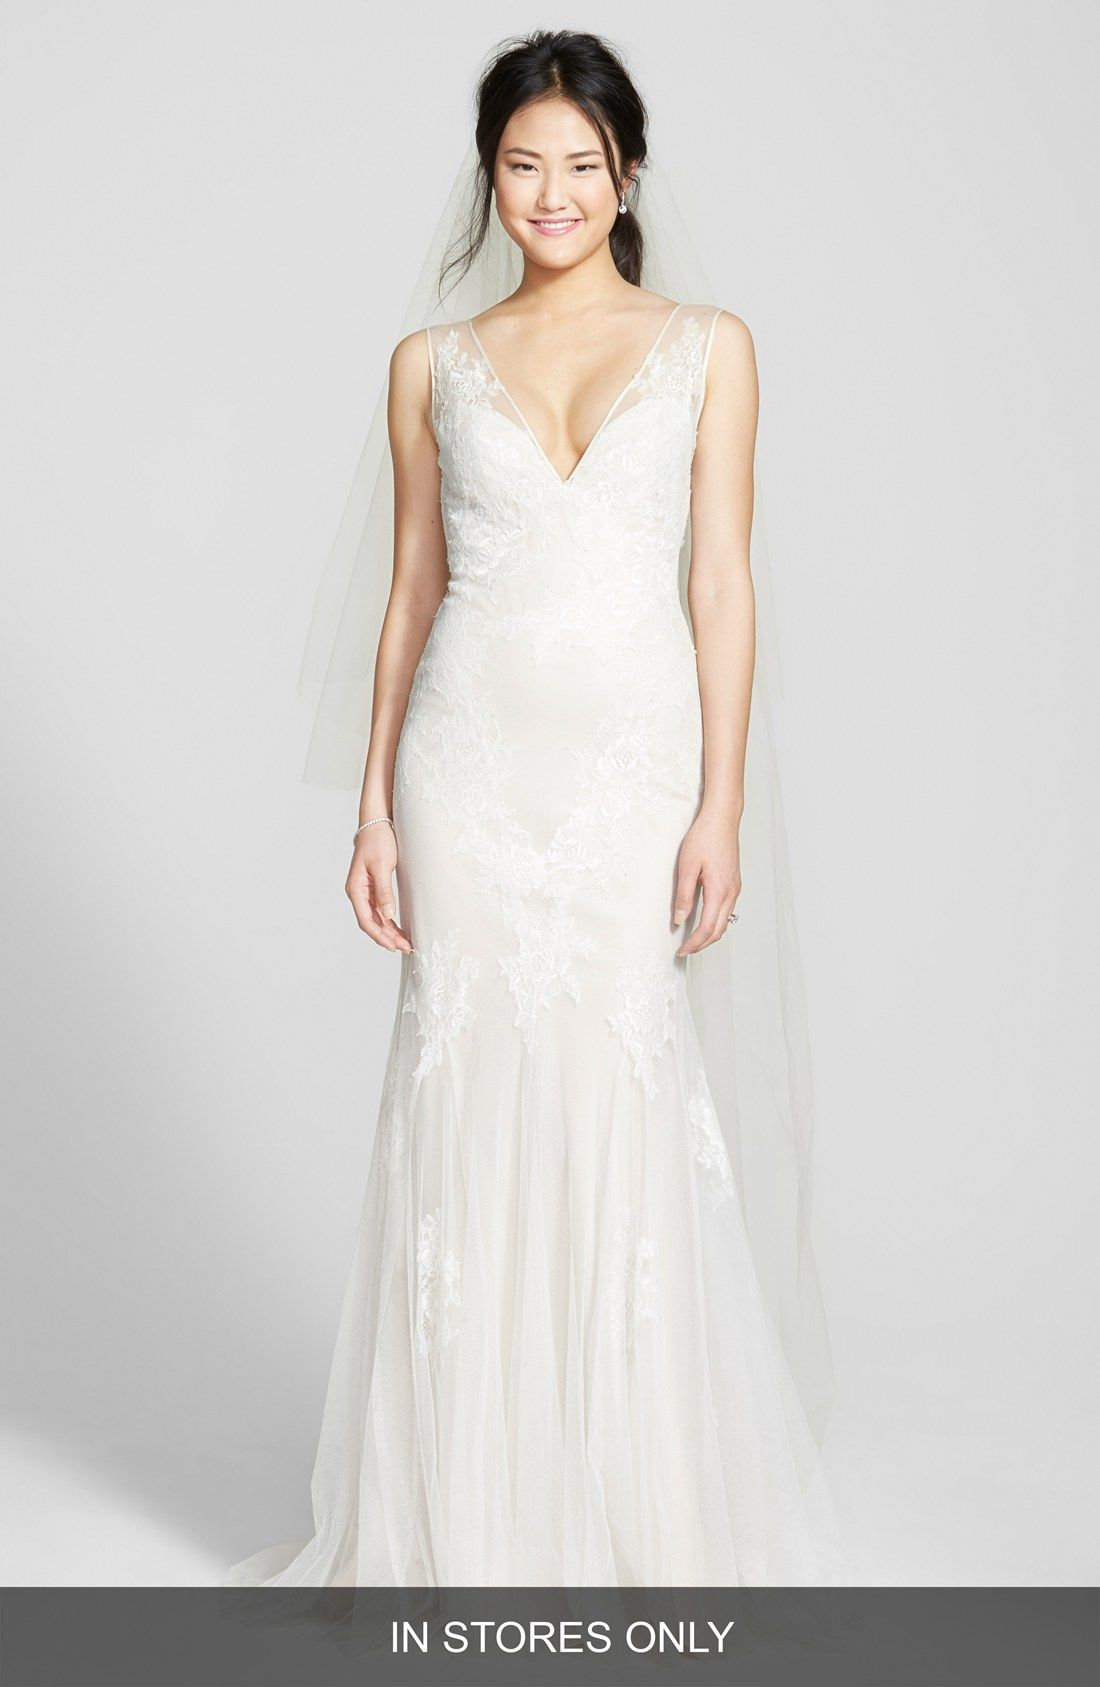 Bliss Monique Lhuillier Chantilly Lace Tulle Gown In Stores Only Nordstrom Plunging Neckline Wedding Dress Monique Lhuillier Bridal Tulle Gown